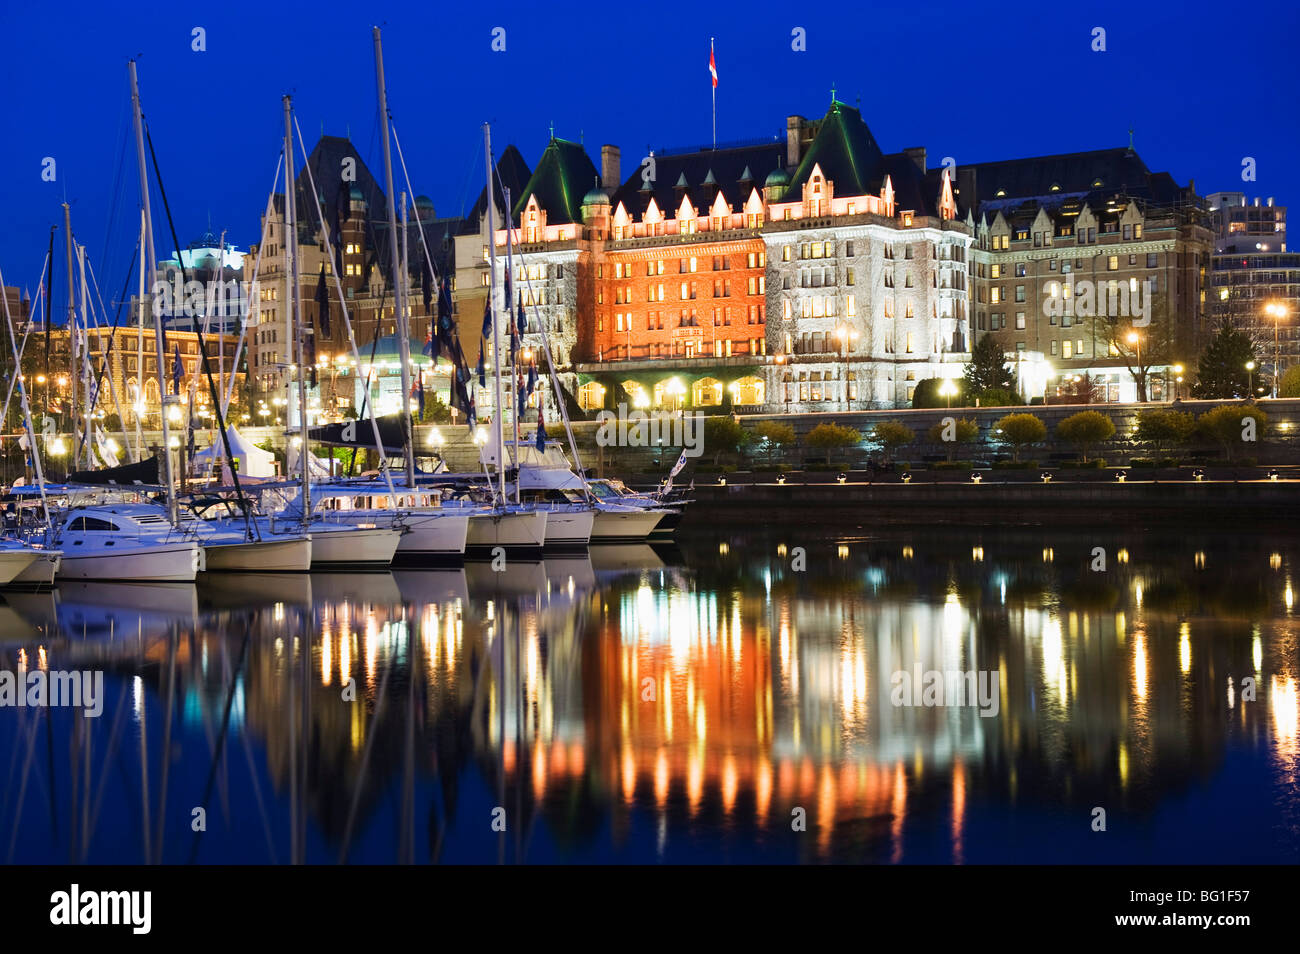 Fairmont Empress Hotel, James Bay Inner Harbour, Victoria, Vancouver Island, British Columbia, Canada, North America - Stock Image